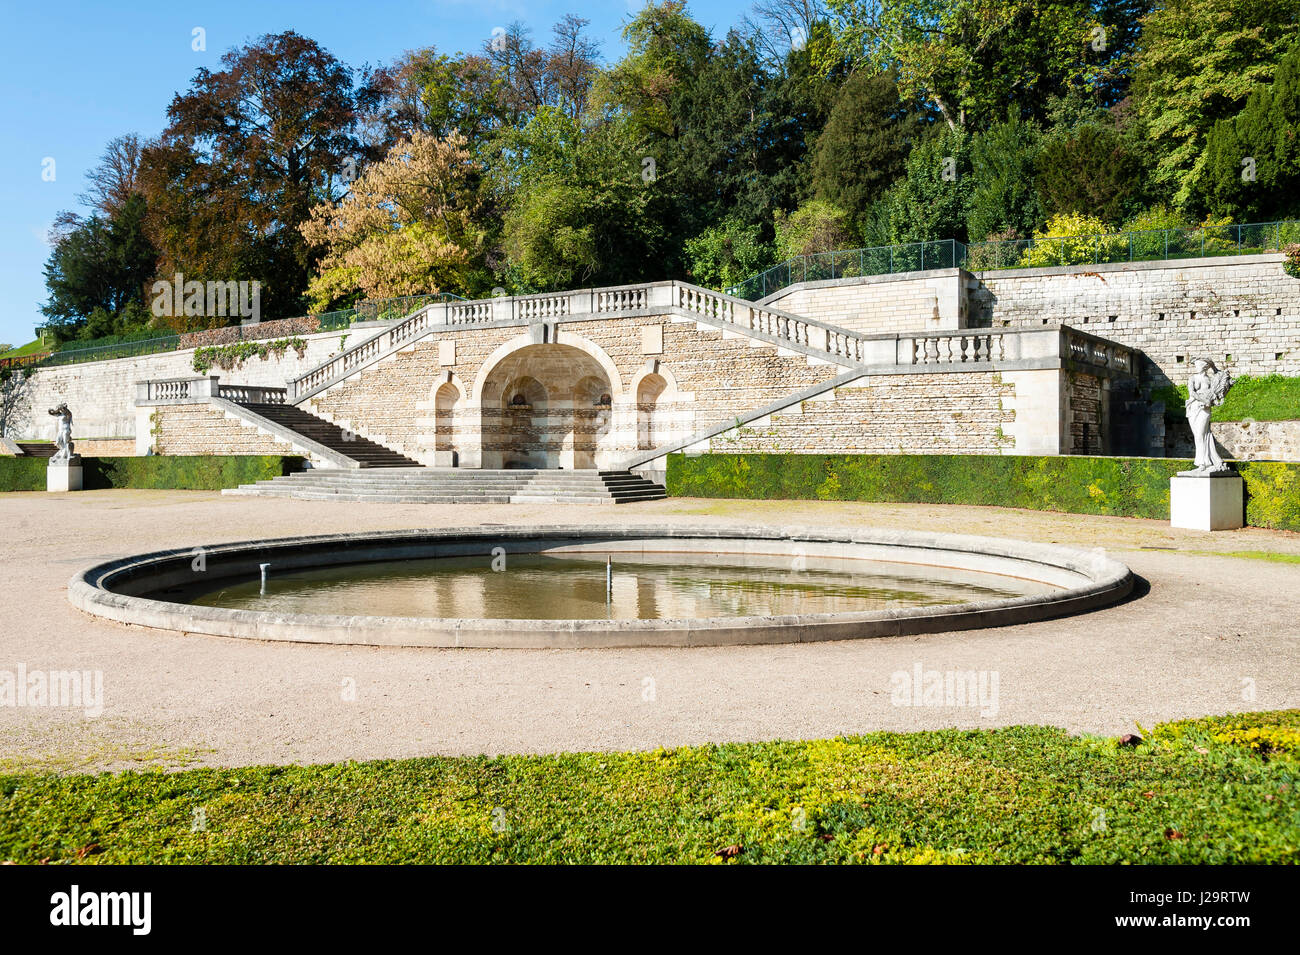 Parc de saint cloud stock photos parc de saint cloud stock images alamy - Parking porte de saint cloud ...